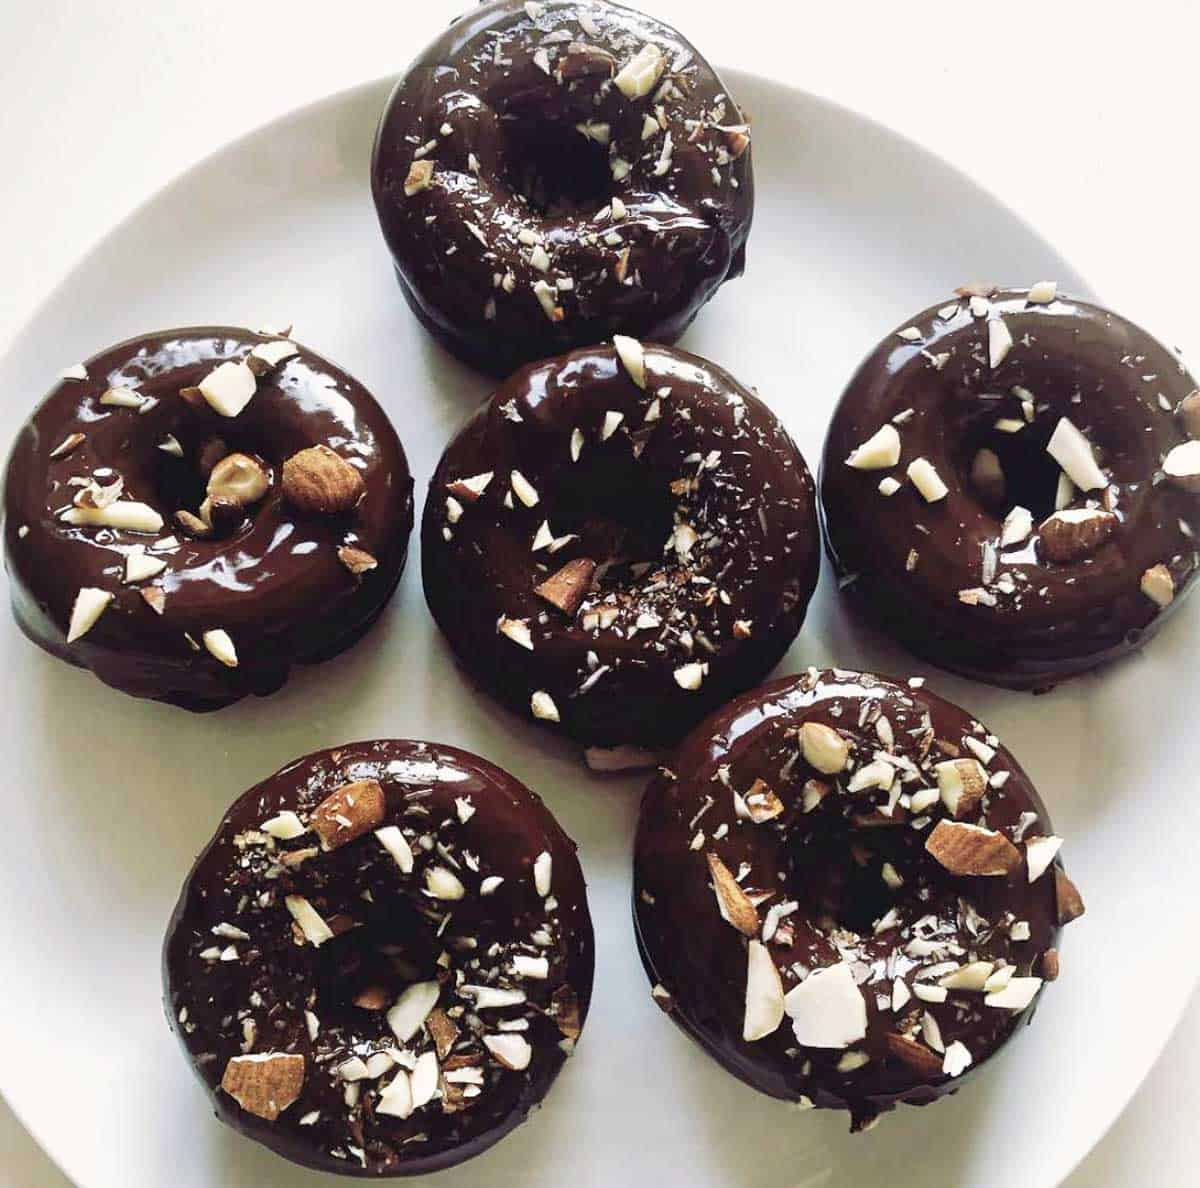 Low-carb chocolate donuts topped with chopped nuts.